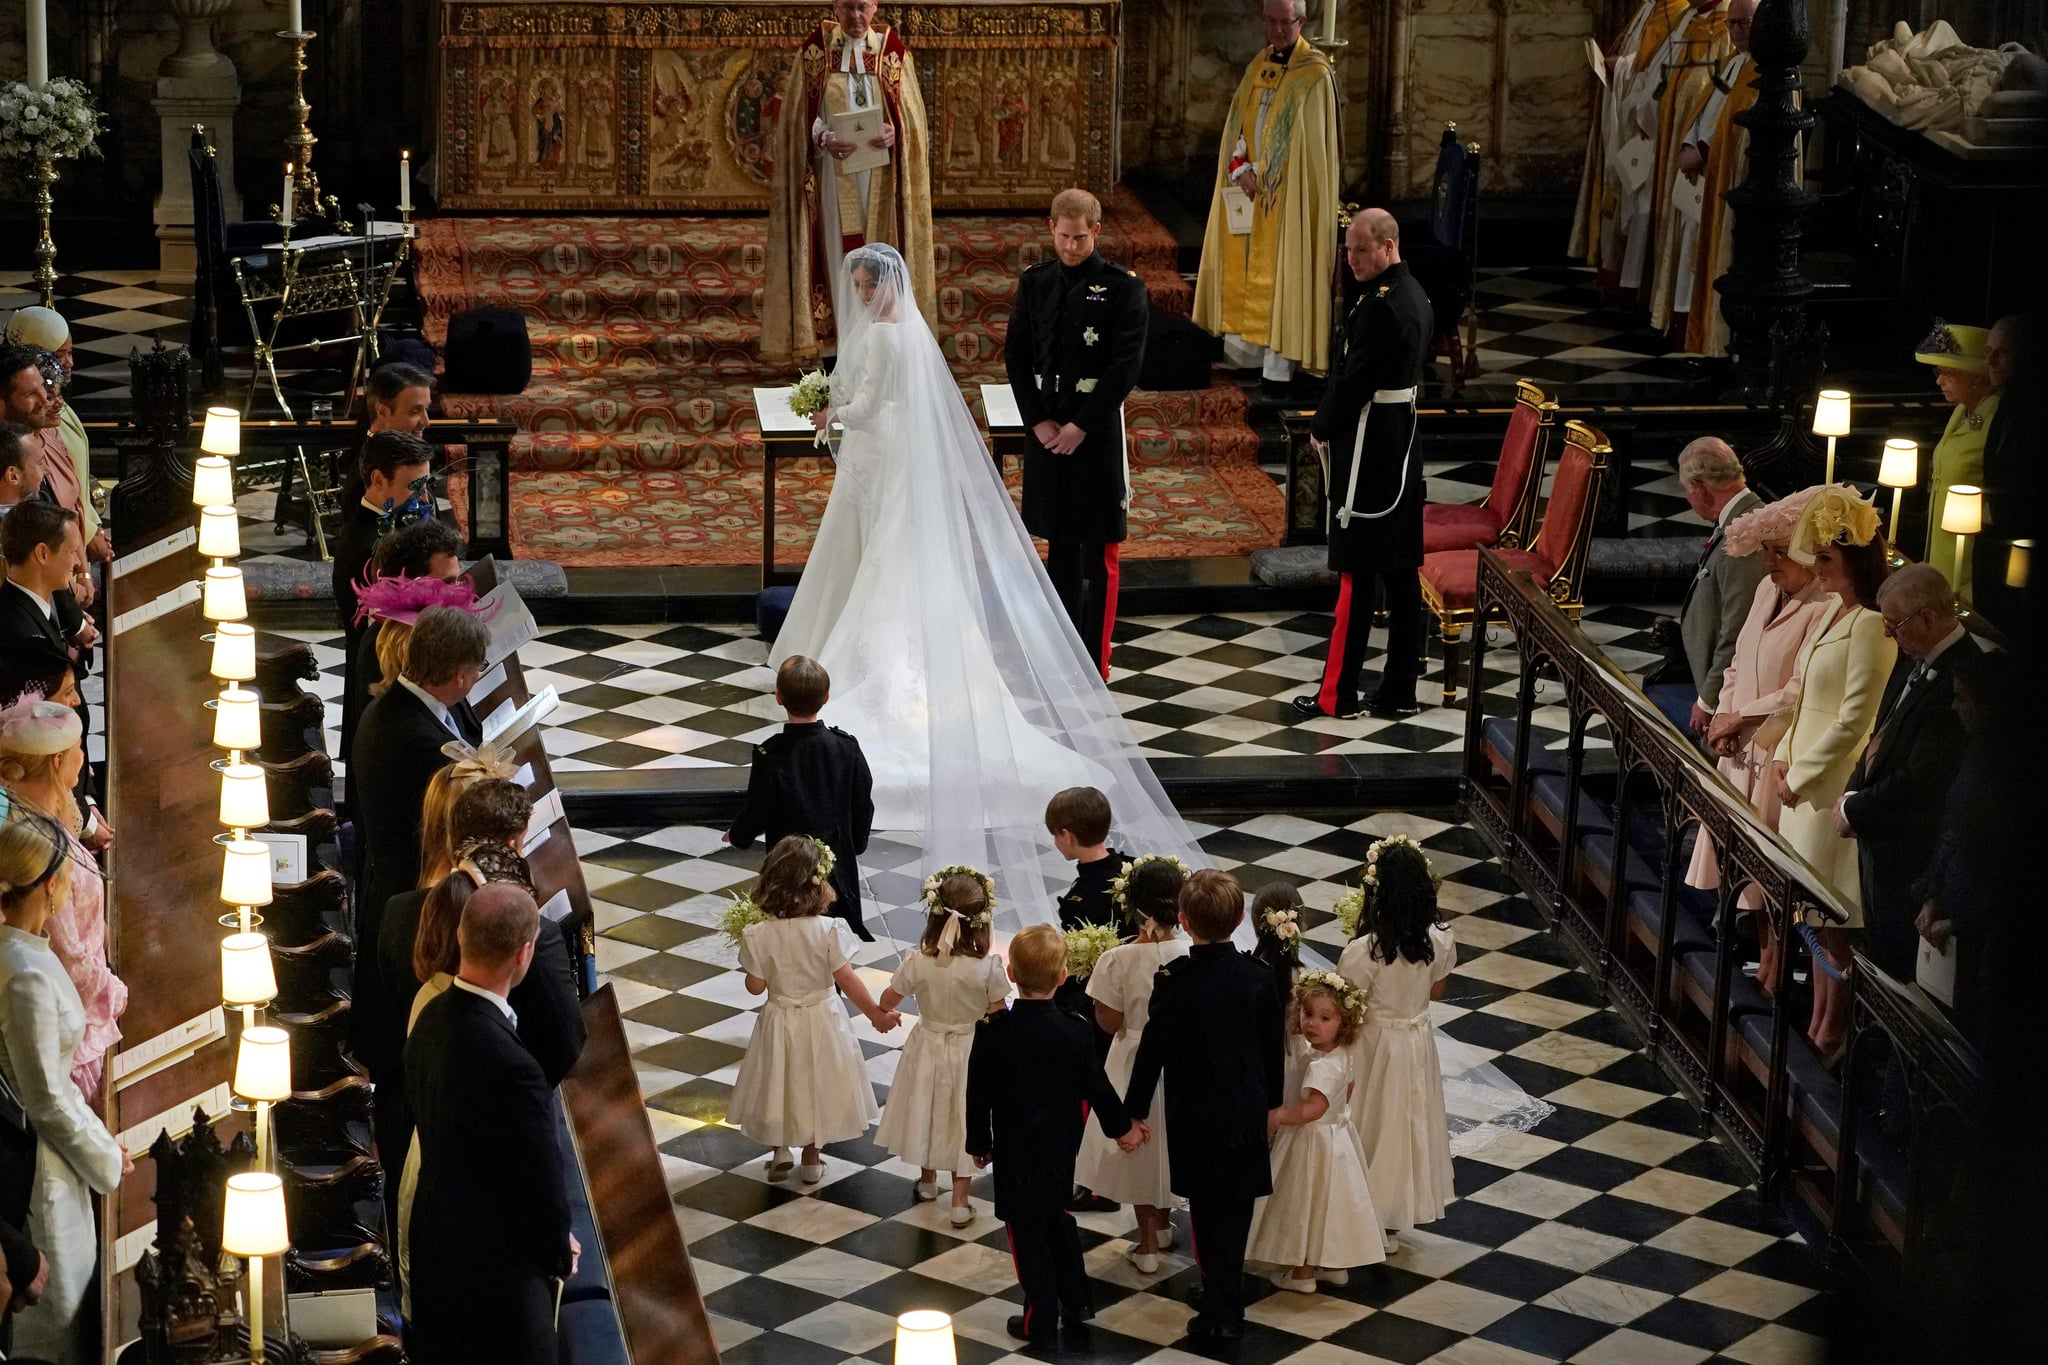 Britain's Prince Harry, Duke of Sussex (centre R) and US actress Meghan Markle (centre) stand at the altar with their bridsesmaids and page boys in St George's Chapel, Windsor Castle, in Windsor, on May 19, 2018 during their wedding ceremony with best man Britain's Prince William, Duke of Cambridge, (R) standing to the side. (Photo by Owen Humphreys / POOL / AFP)        (Photo credit should read OWEN HUMPHREYS/AFP/Getty Images)